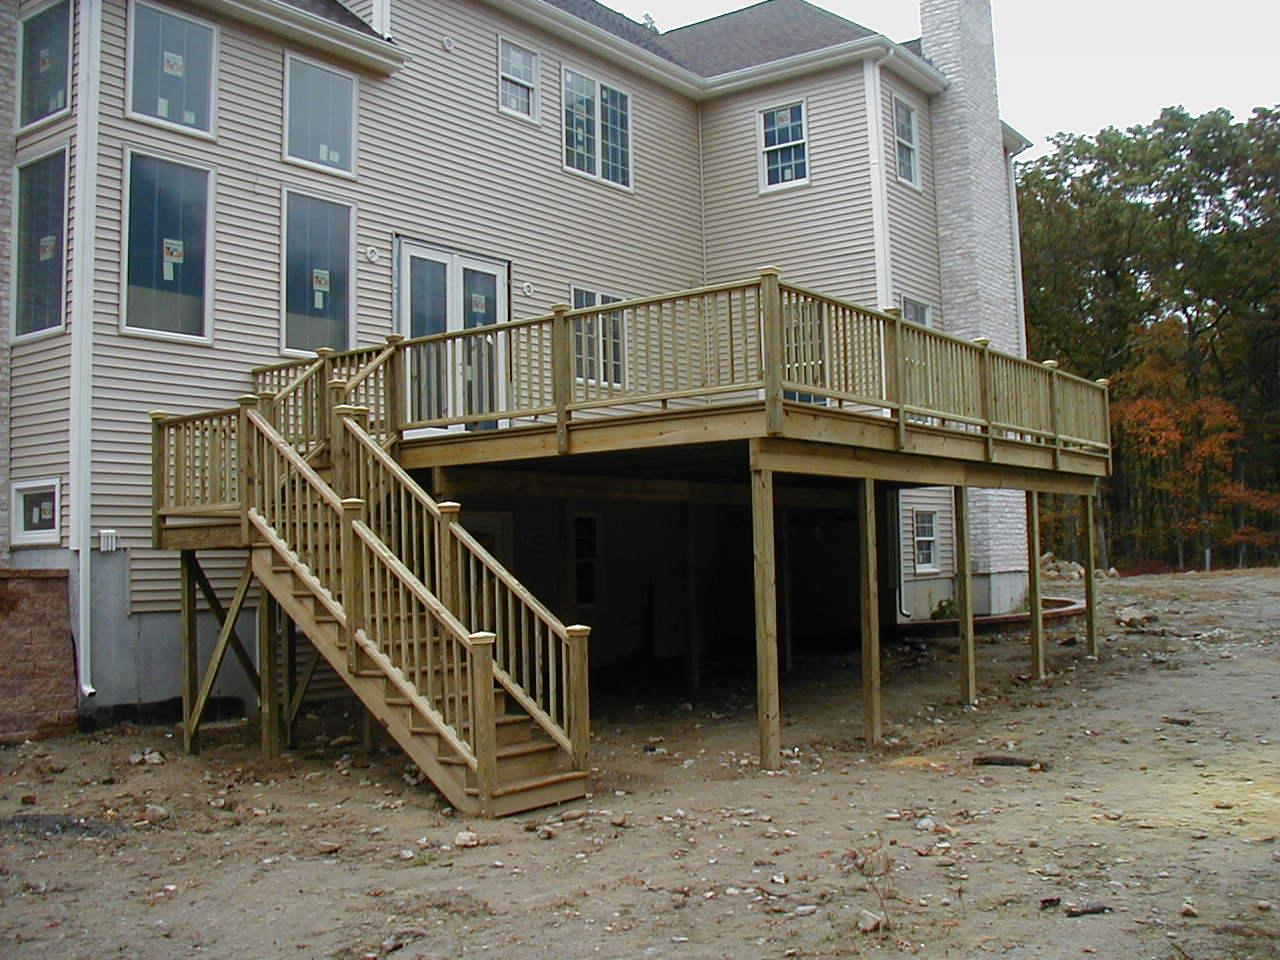 Deck of house